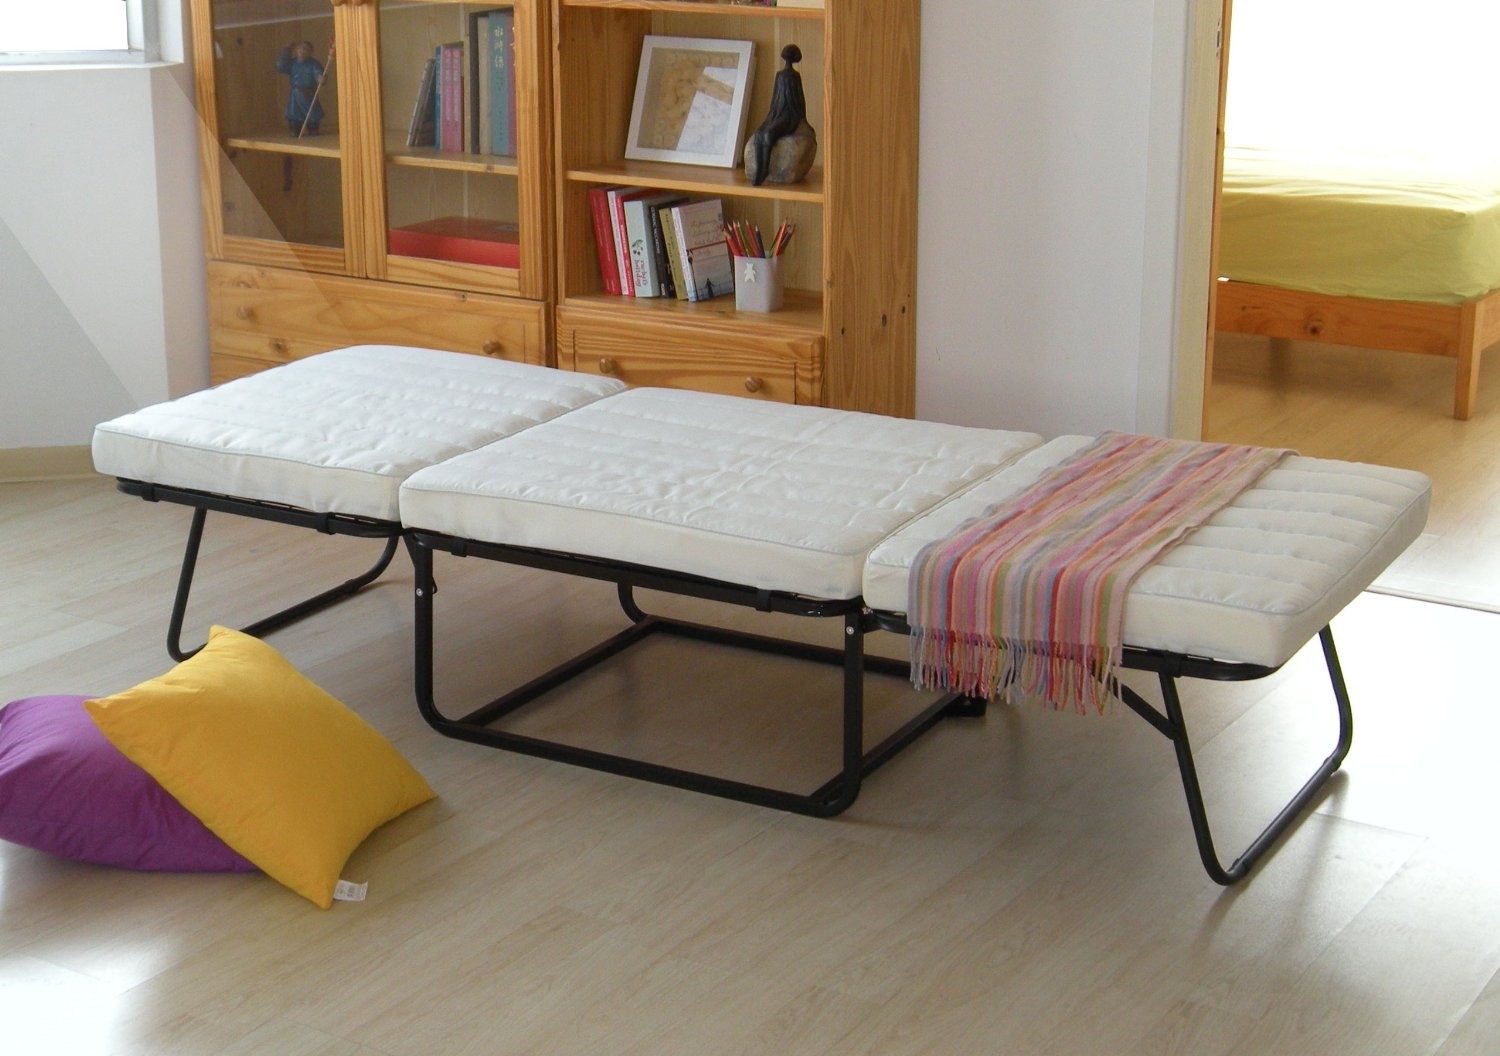 IKEA Guest Bed: Easy and Practical Way to Welcome Your Guest